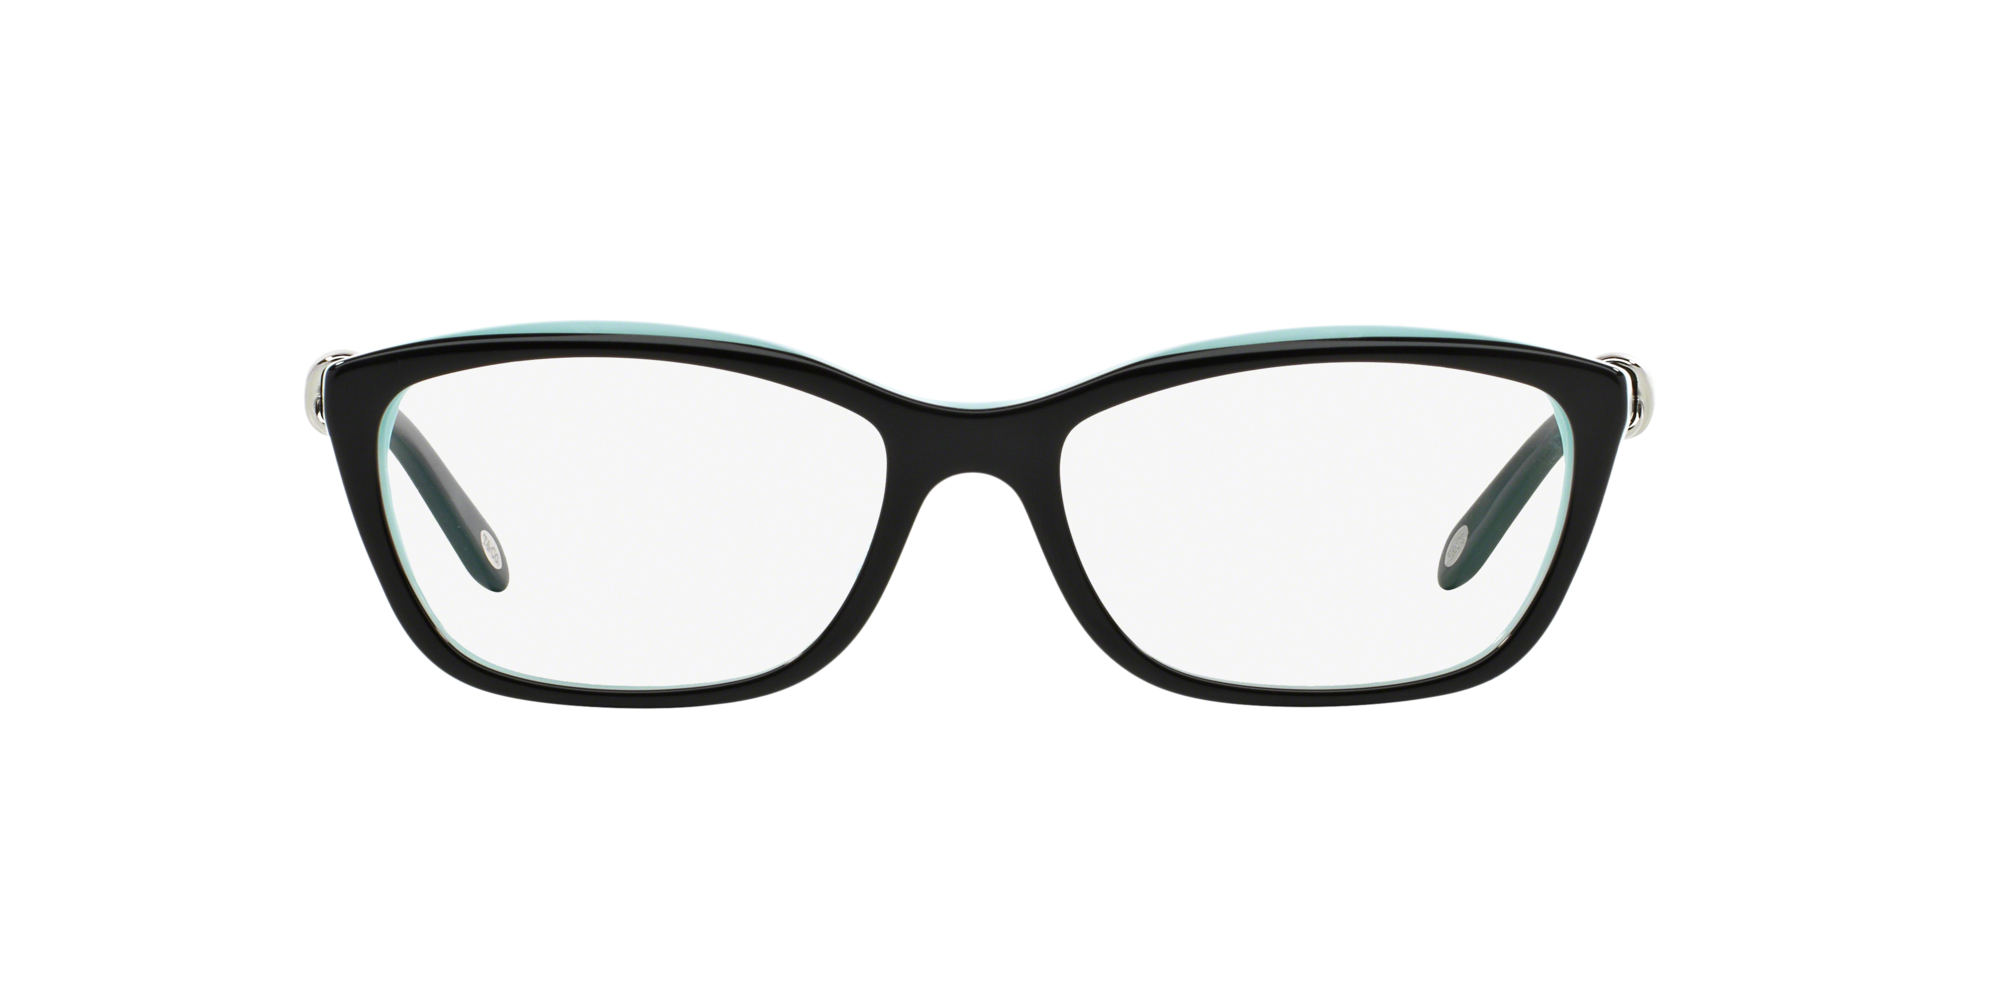 Image for TF2074 from LensCrafters   Glasses, Prescription Glasses Online, Eyewear